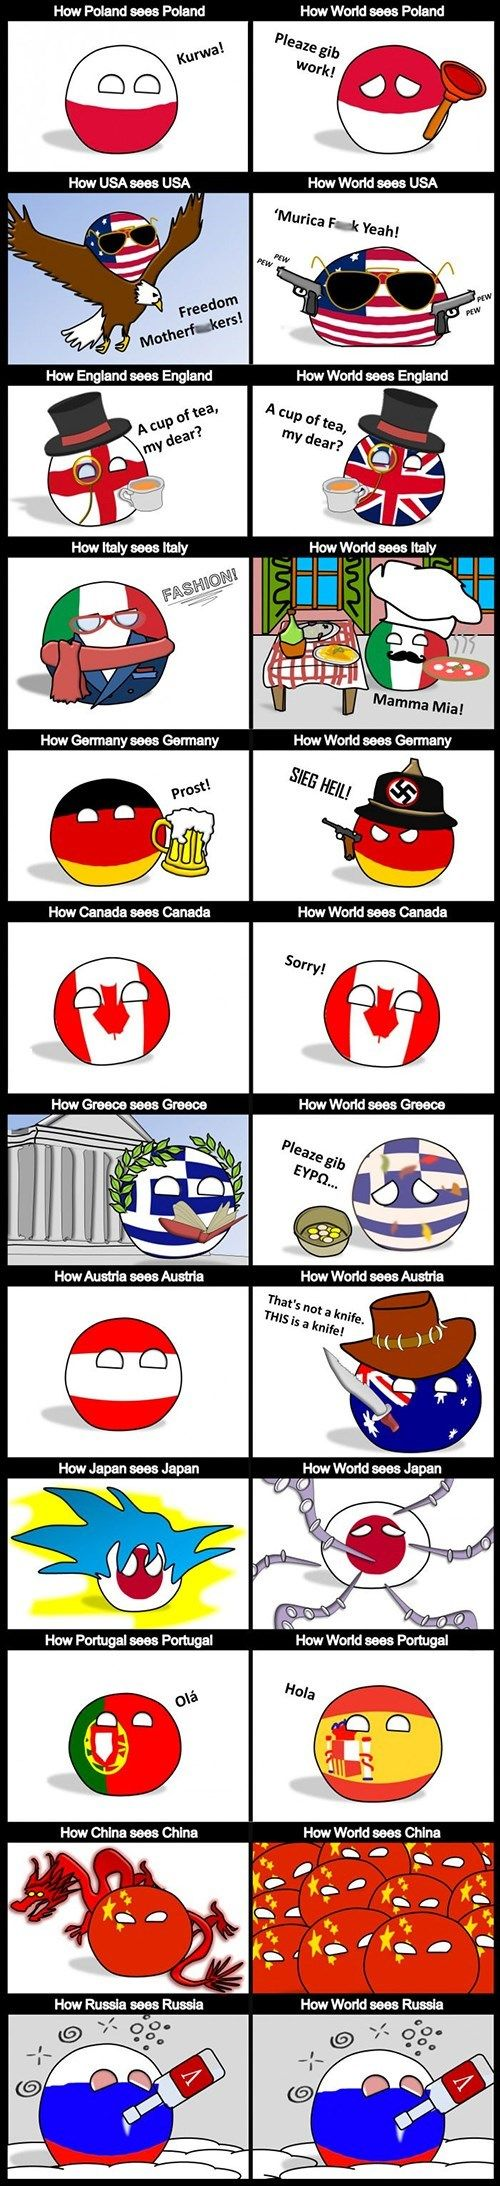 Accurate, near as I can tell. Especially Russia.